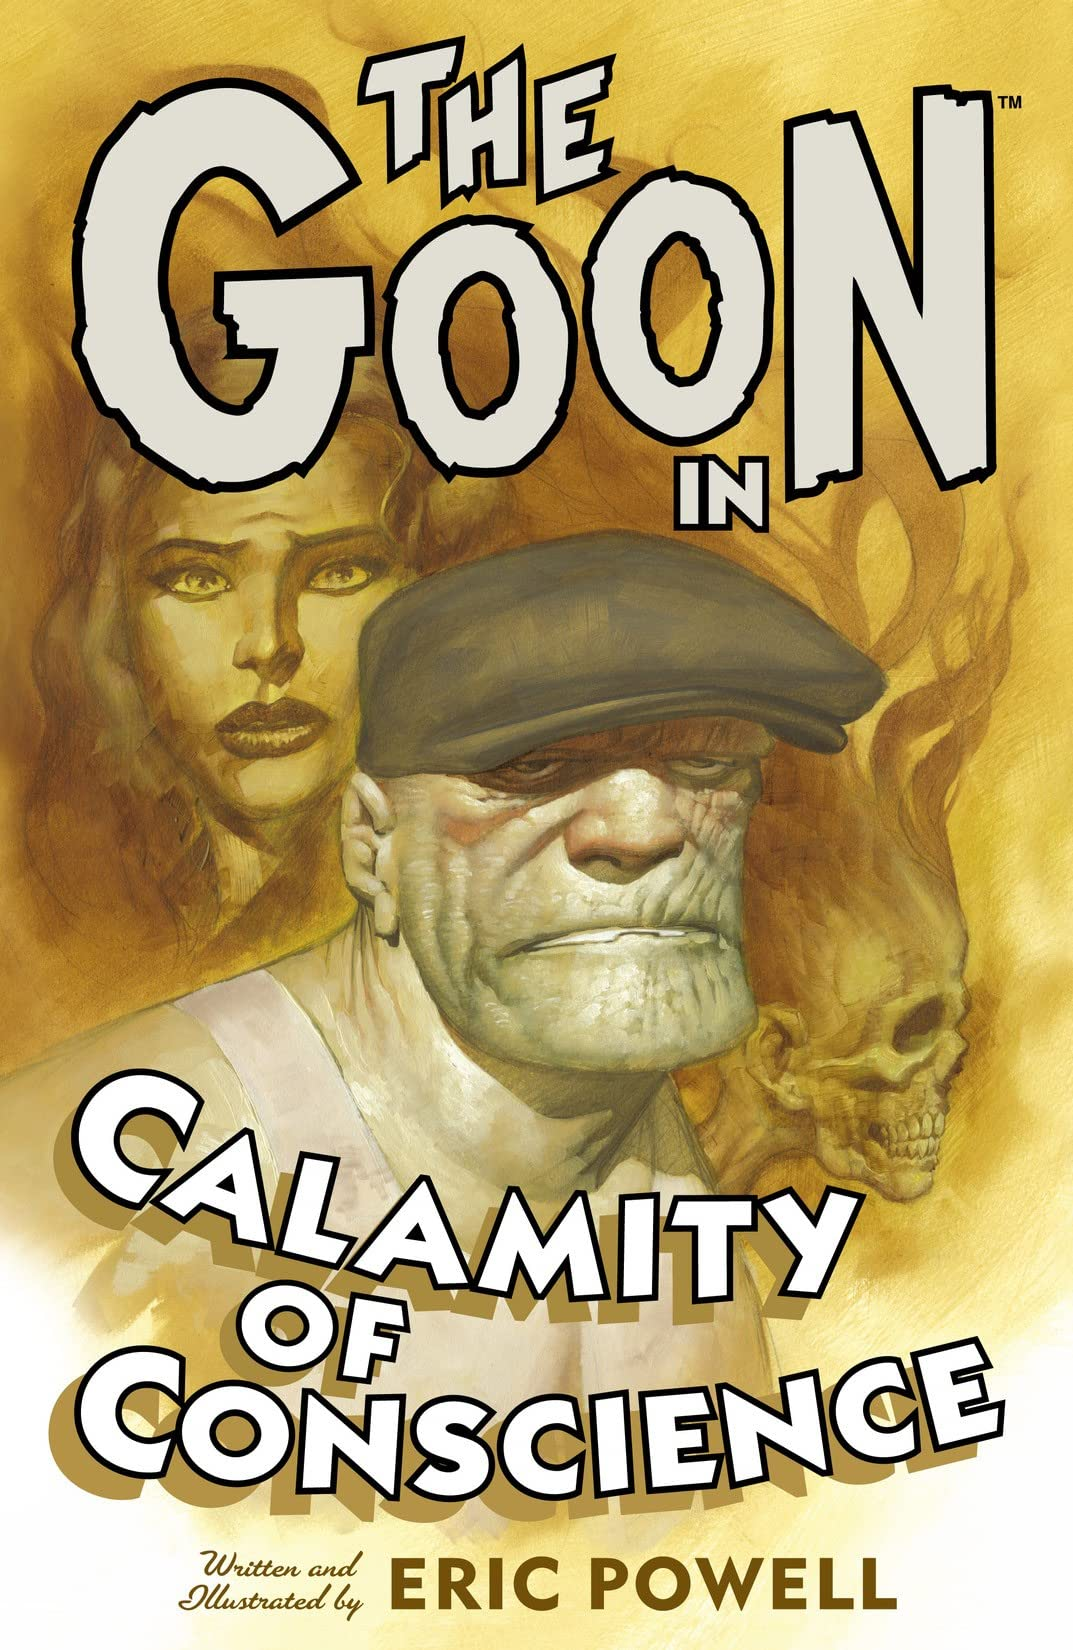 The Goon Vol. 9: Calamity of Conscience